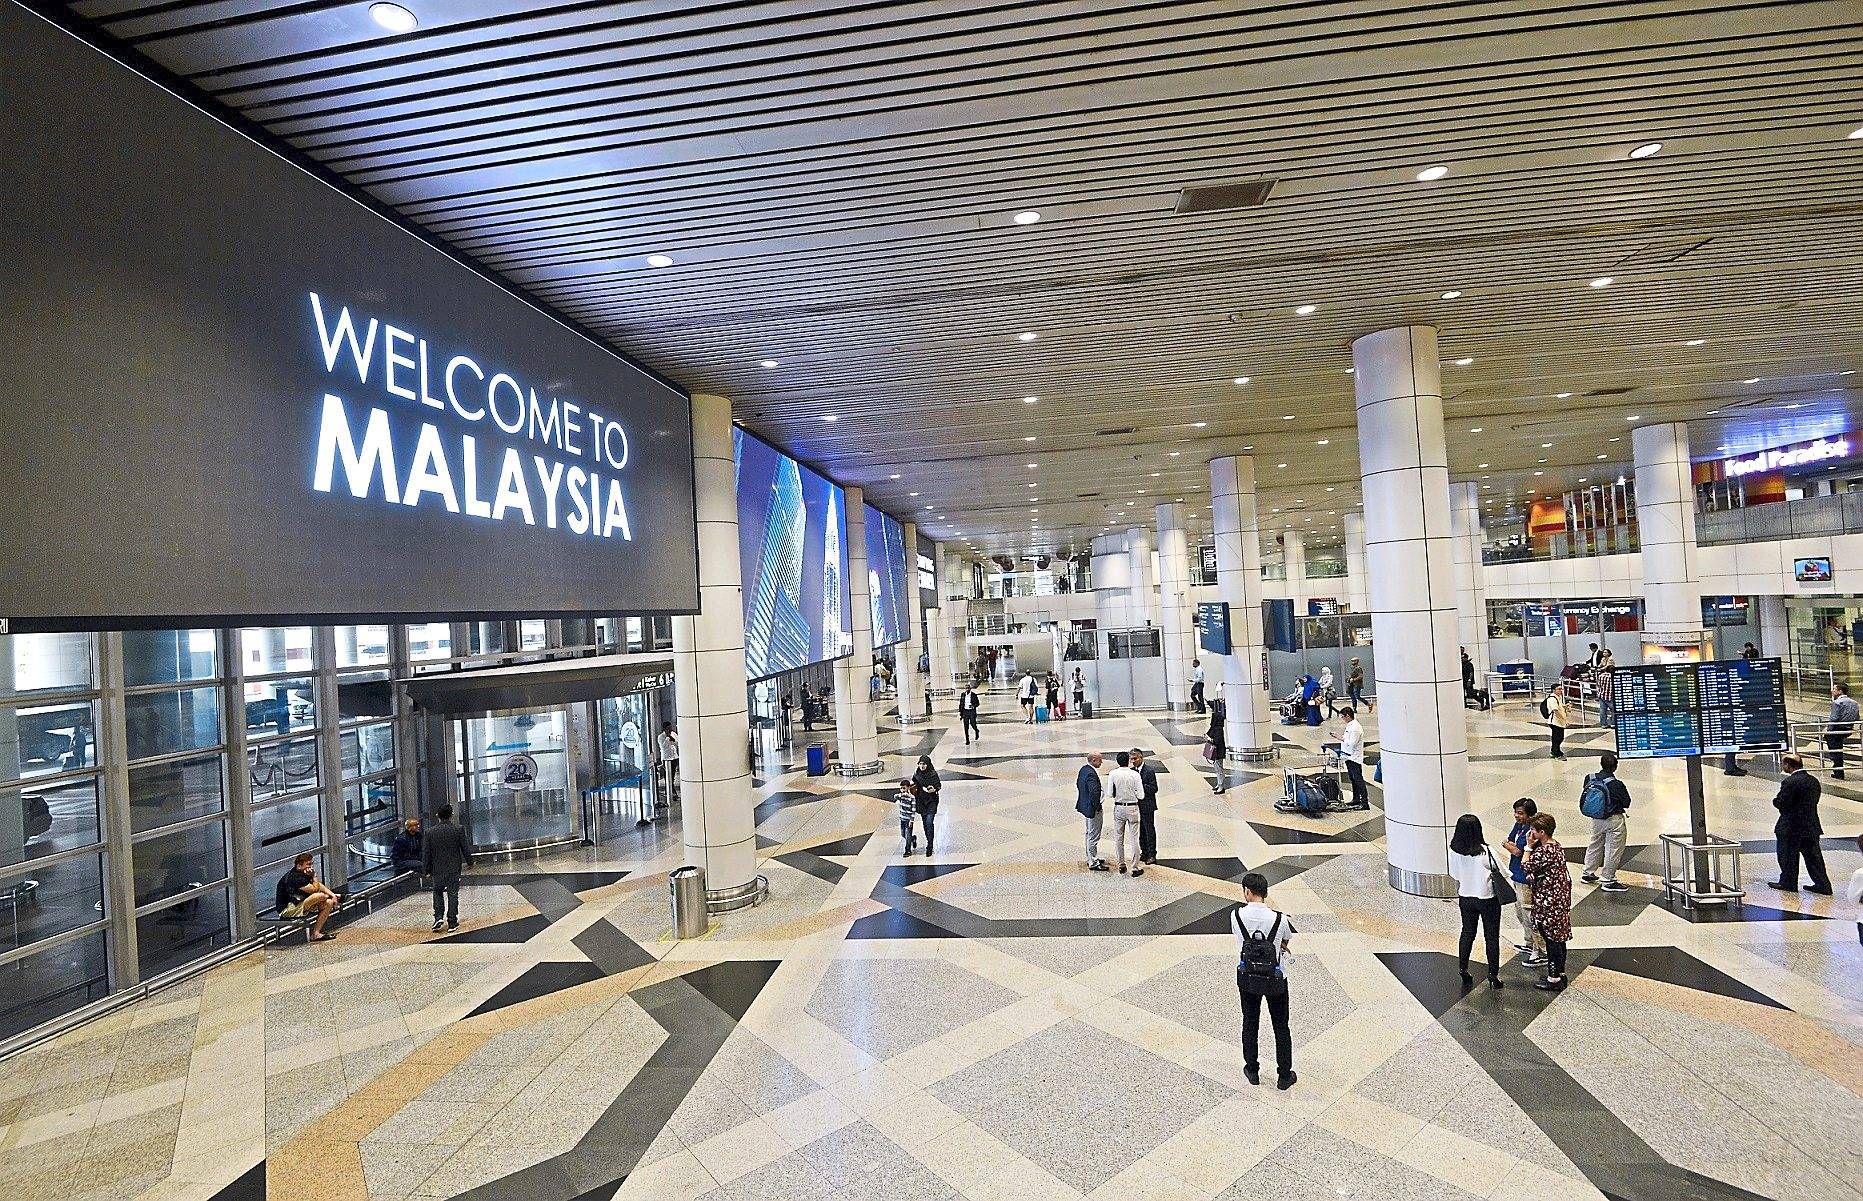 More passengers: RHB Research says MAHB's earnings growth potential remains intact due to an increasing passenger volume.